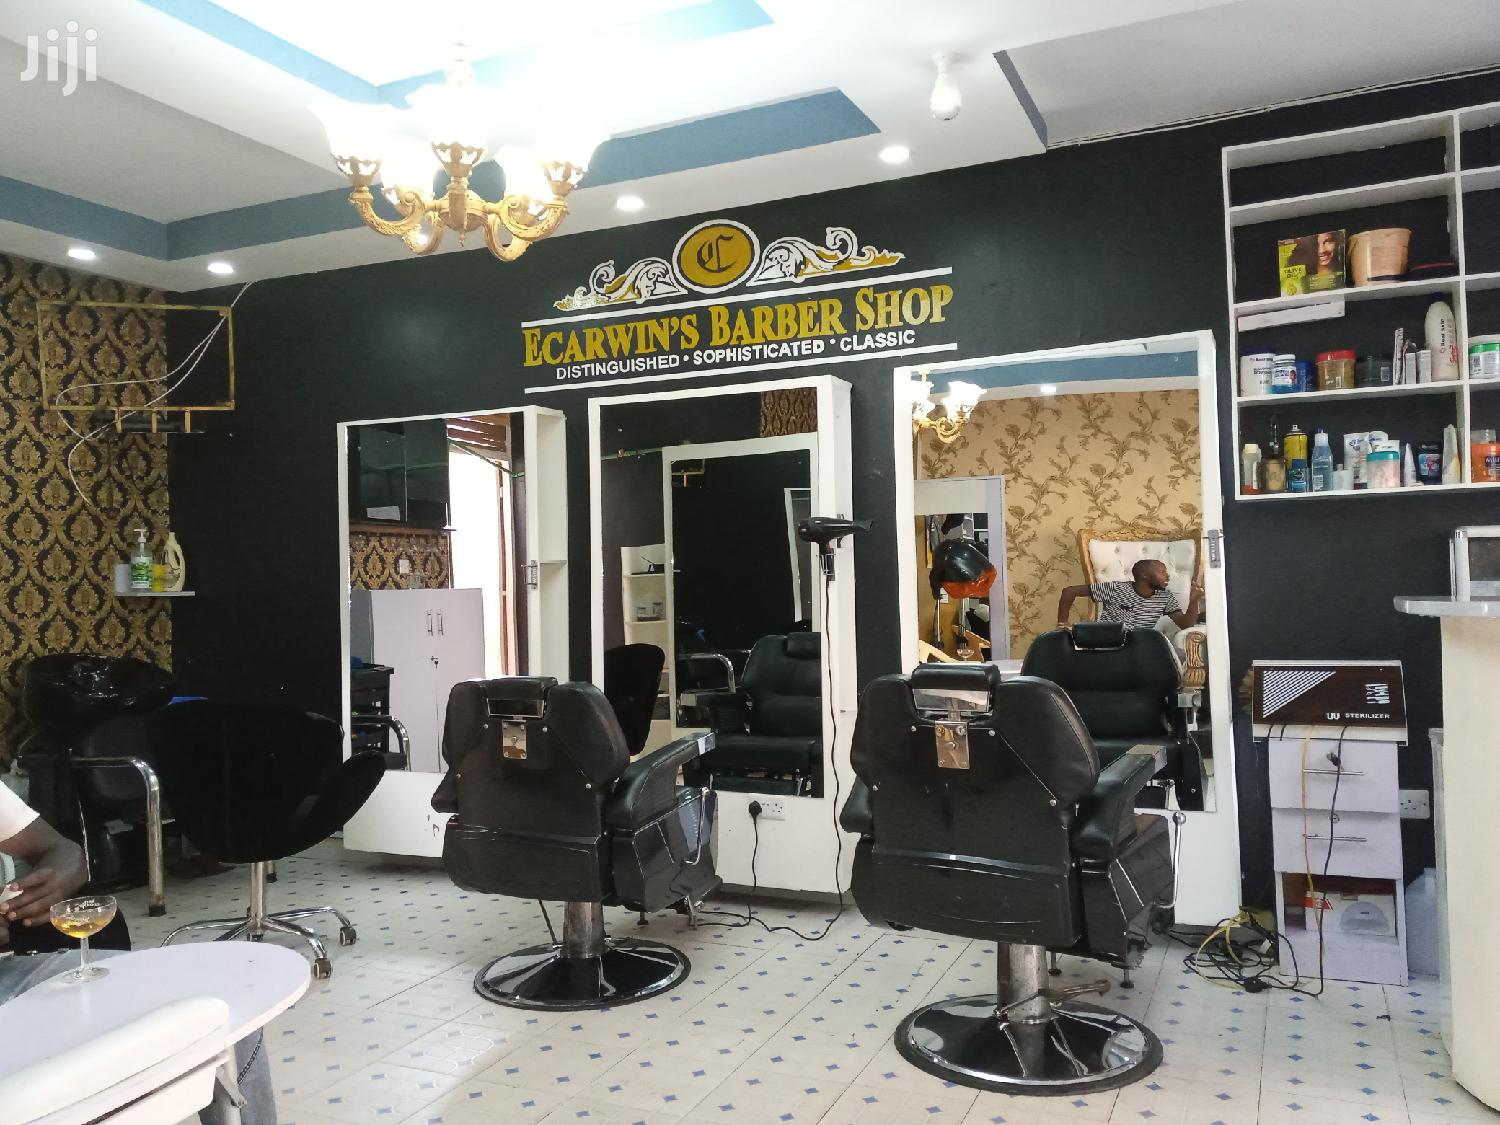 Kinyozi Stations | Salon Equipment for sale in Nairobi Central, Nairobi, Kenya